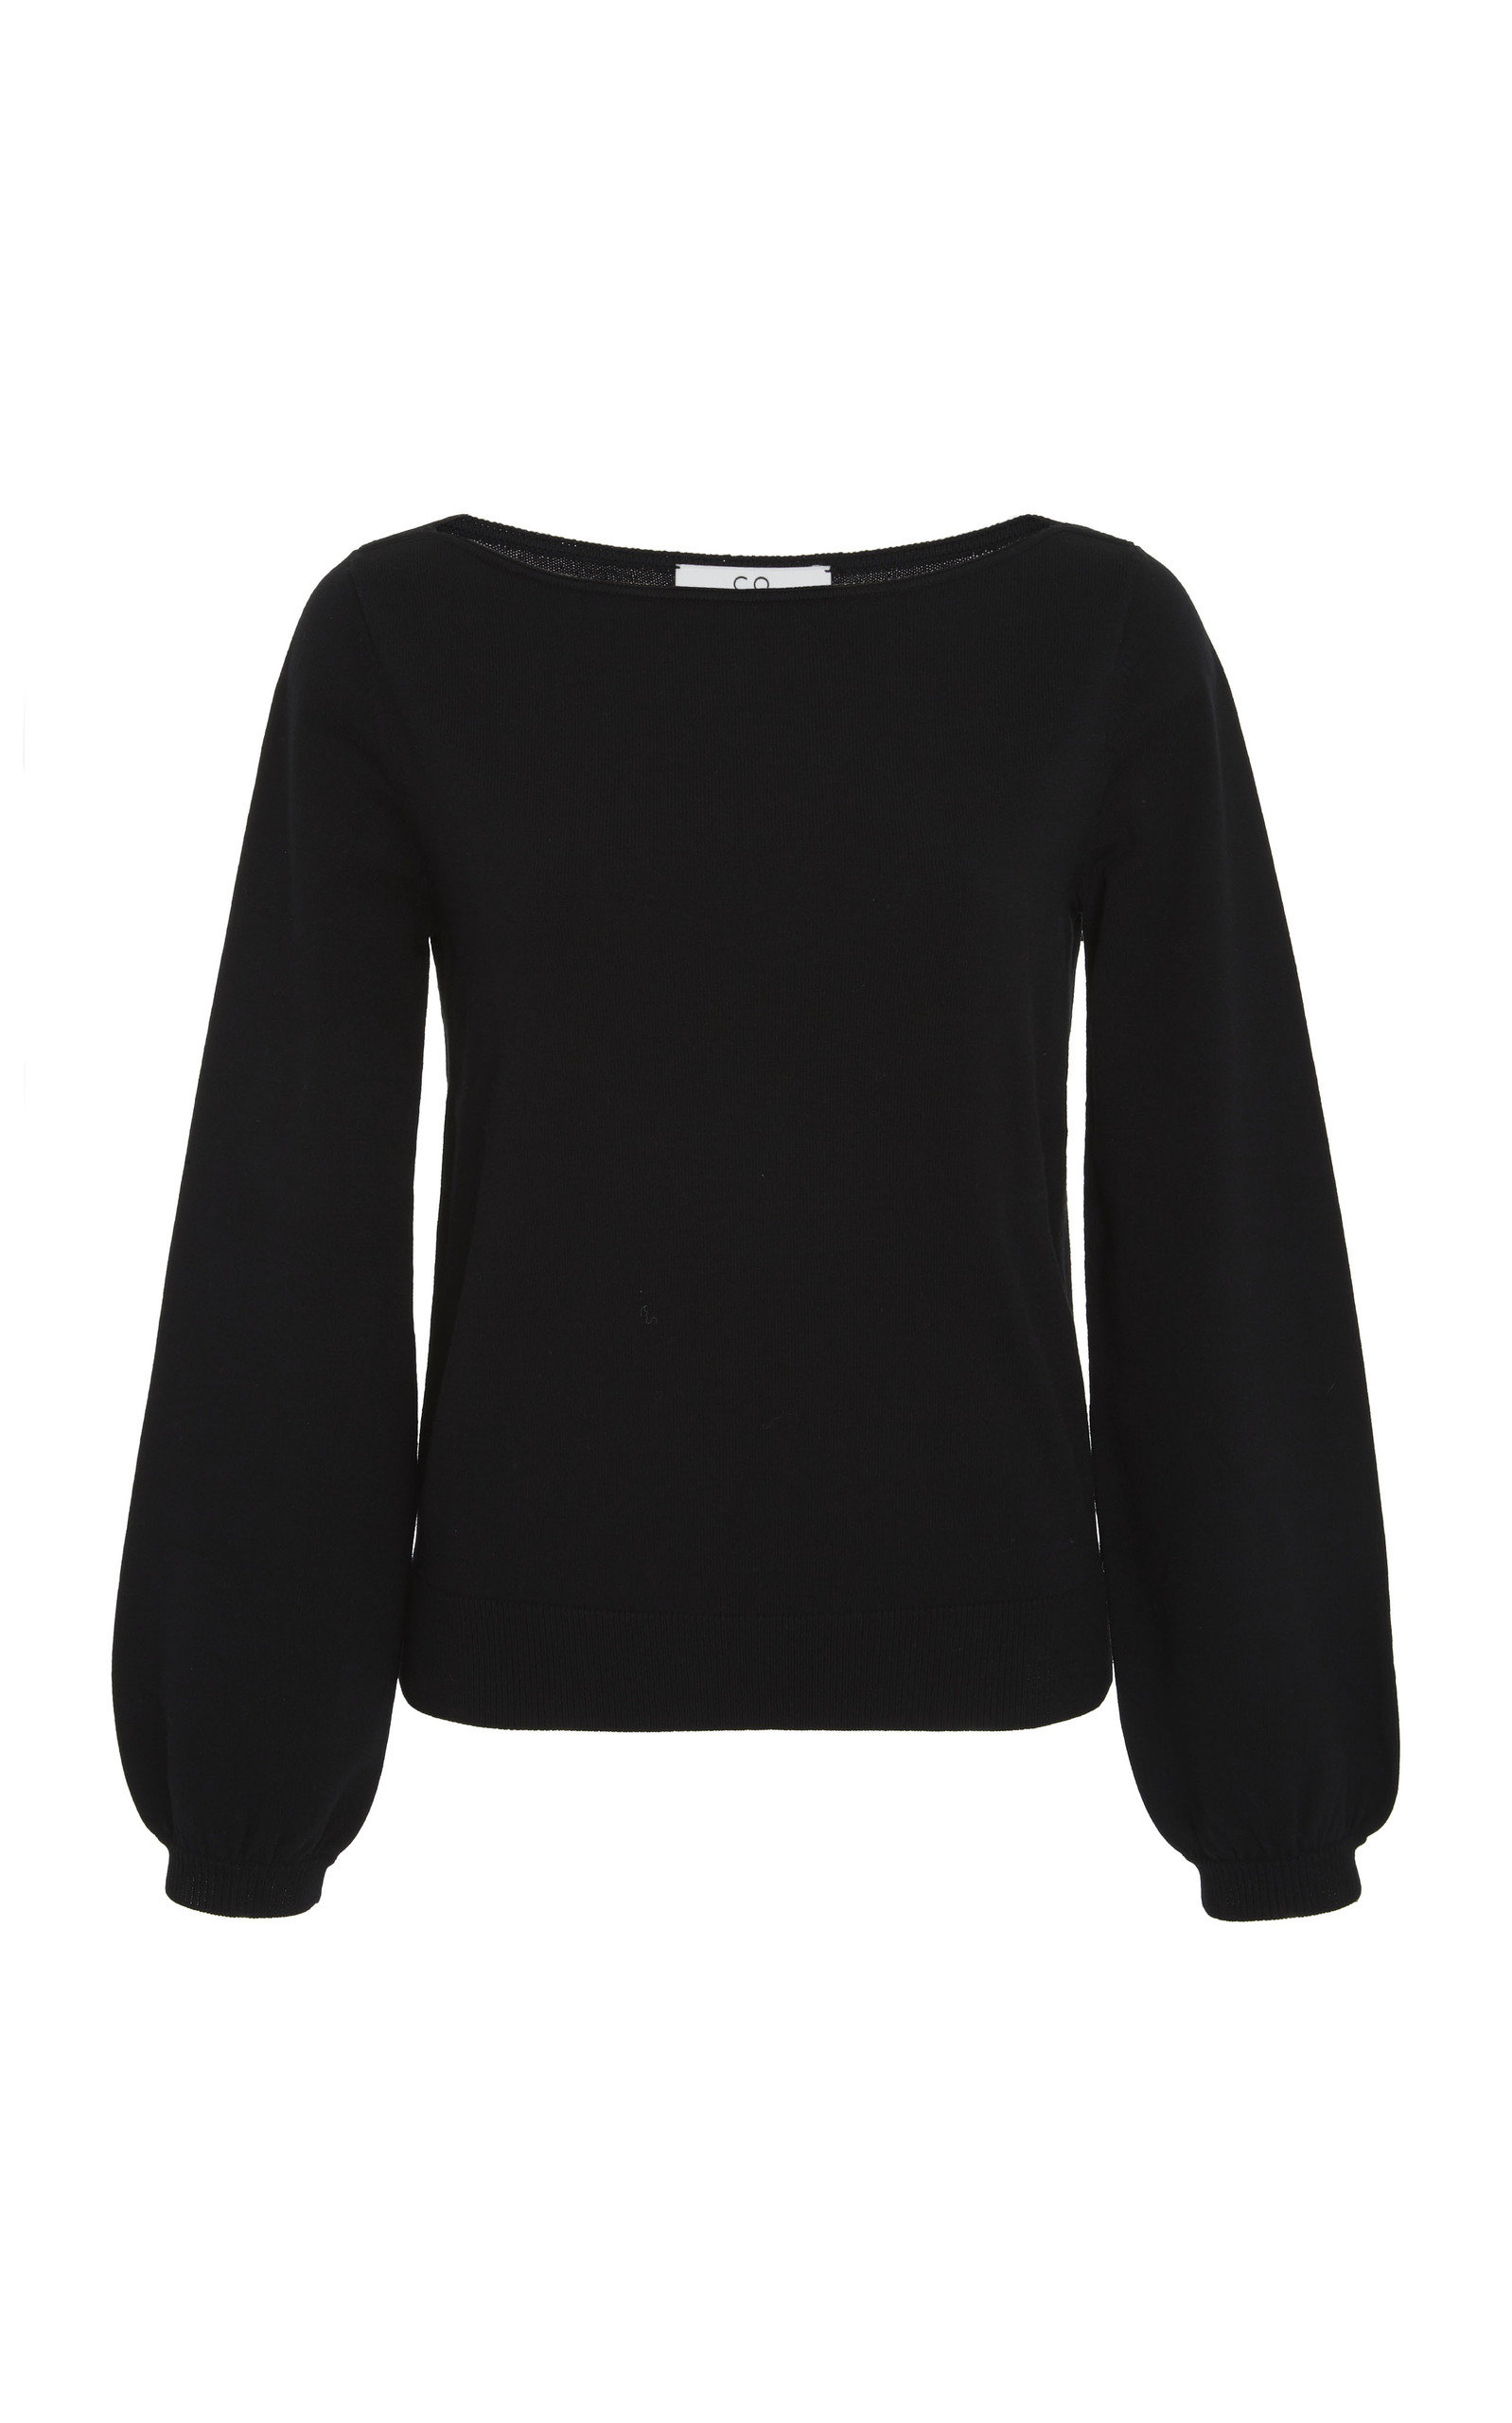 Co Tops LONG SLEEVE ROUND NECK SWEATER